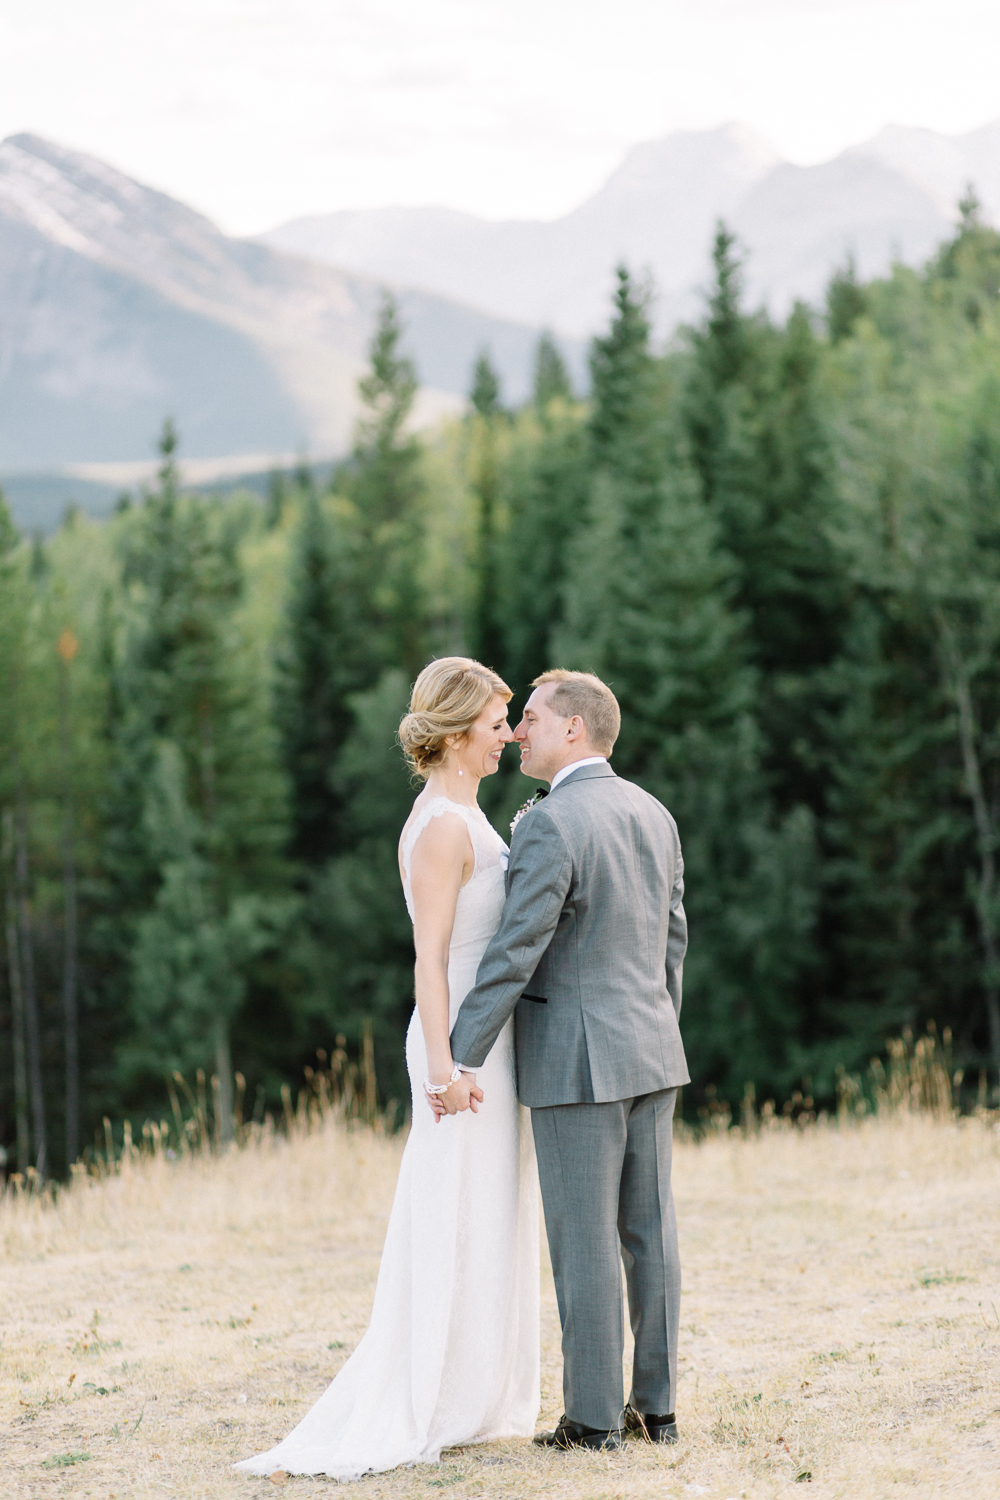 Kananaskis Delta Lodge Wedding - Calgary Wedding Photographers